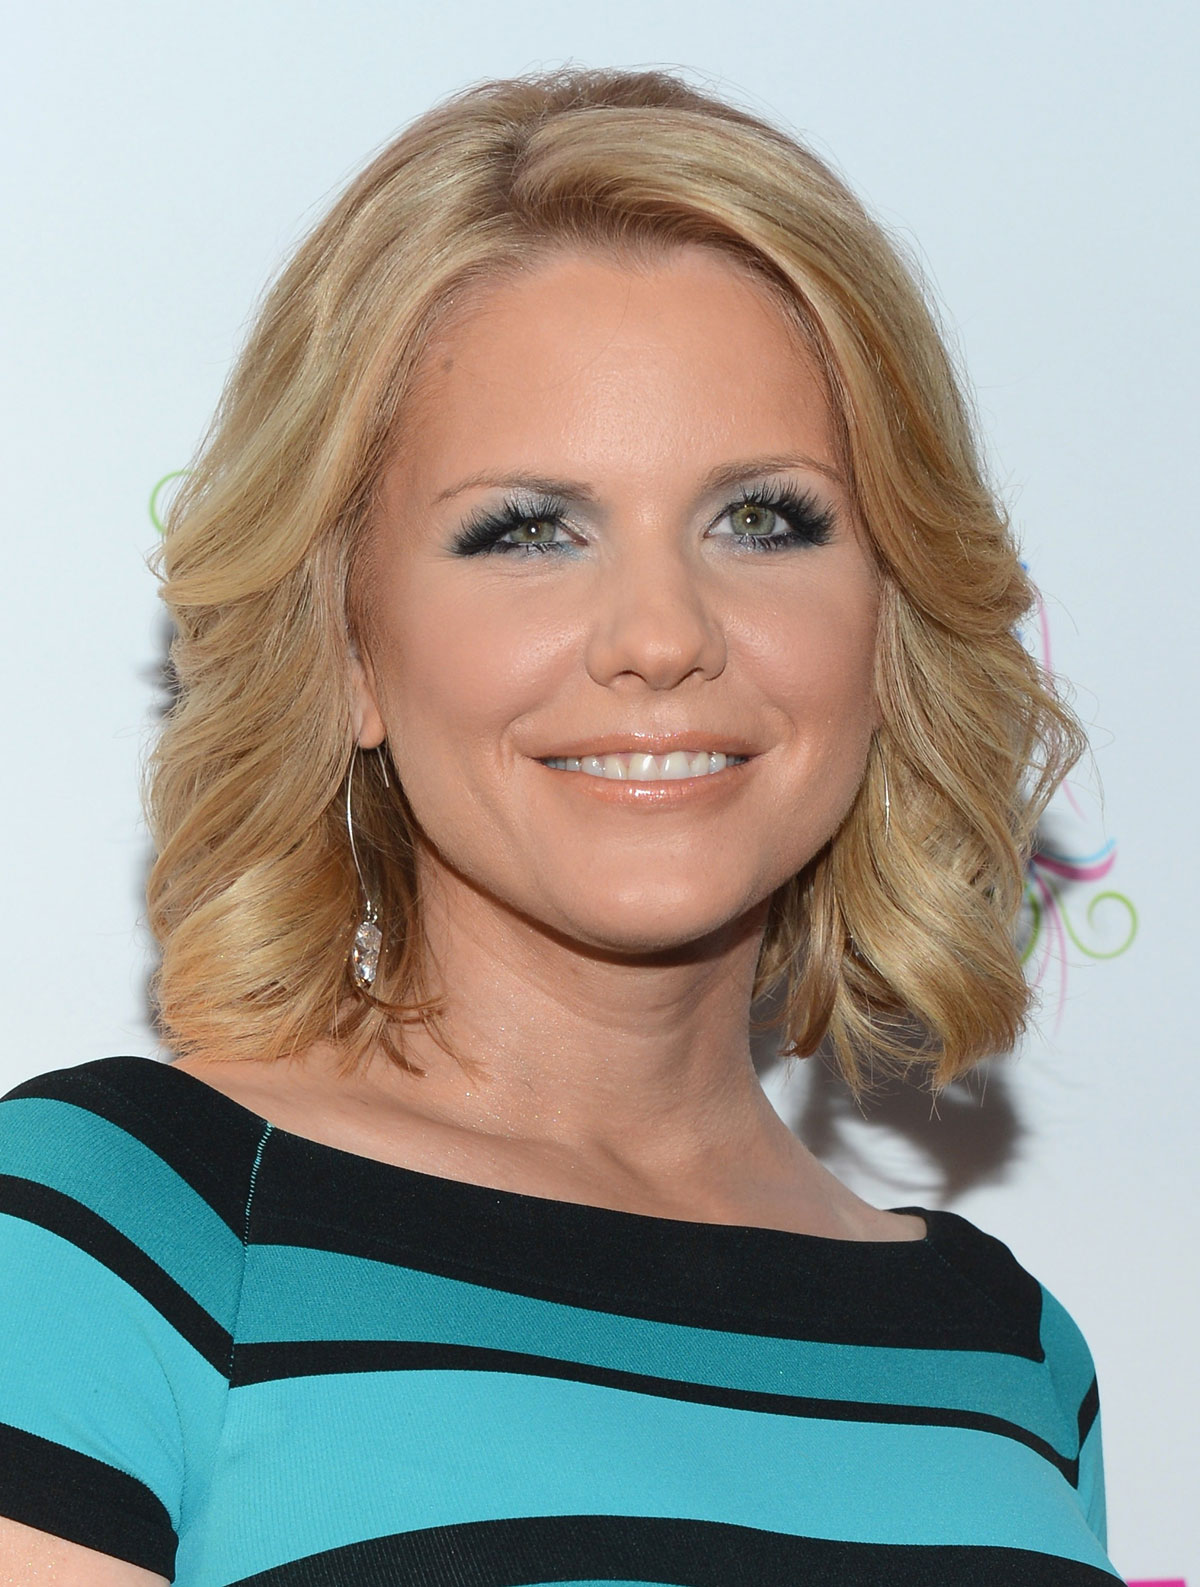 Carrie Keagan - Images